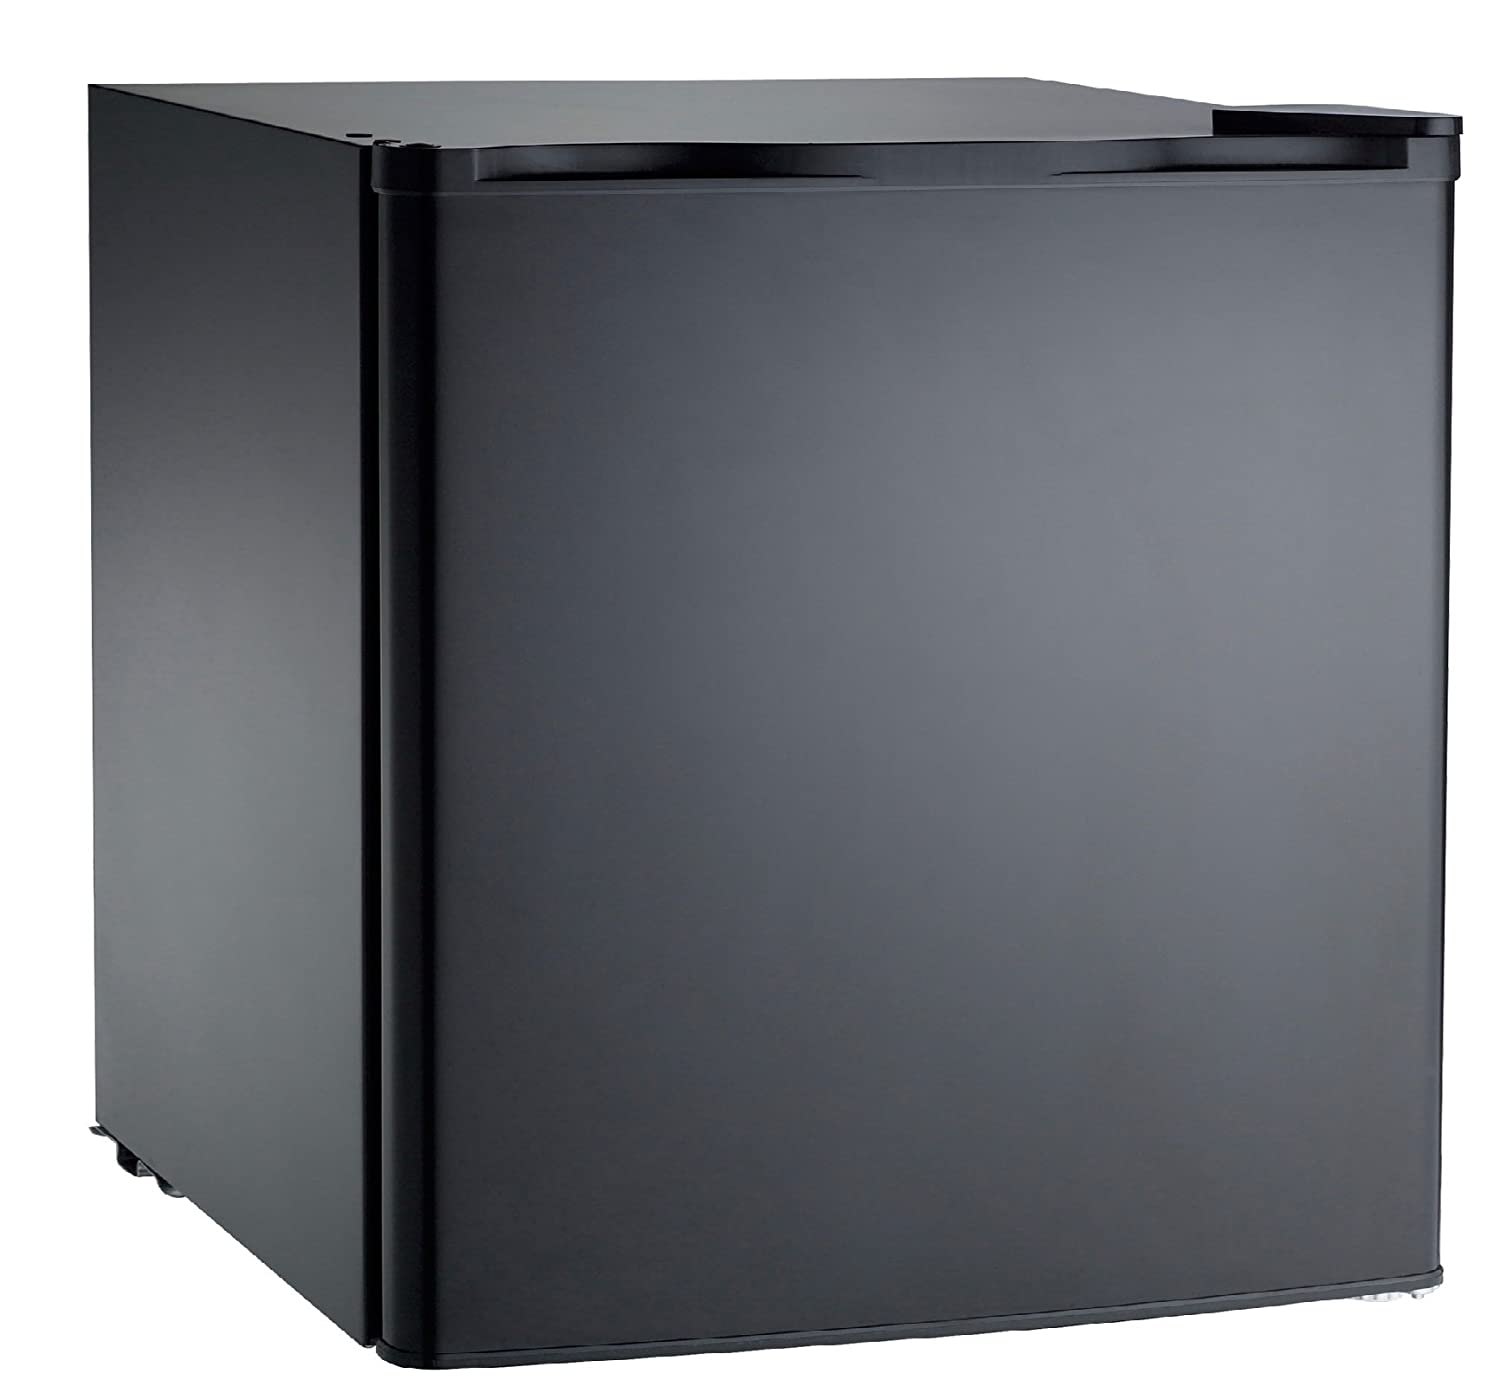 1.6-1.7 Cubic Foot Fridge compact refrigerator